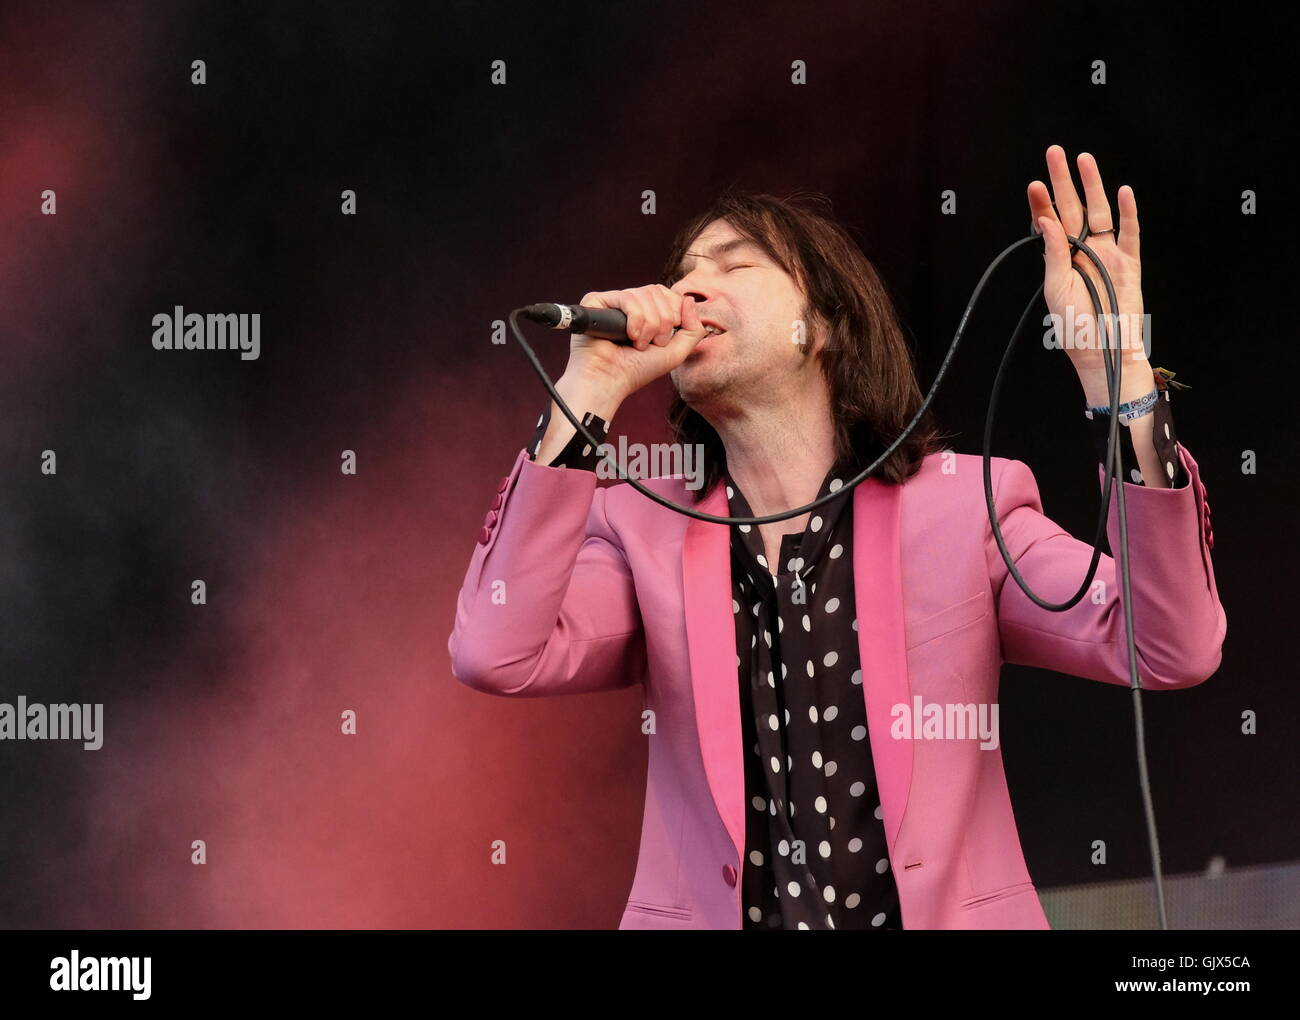 Common People Festival, Hampshire, 28th May 2016, Bobby Gillespie performing live with Primal Scream - Stock Image